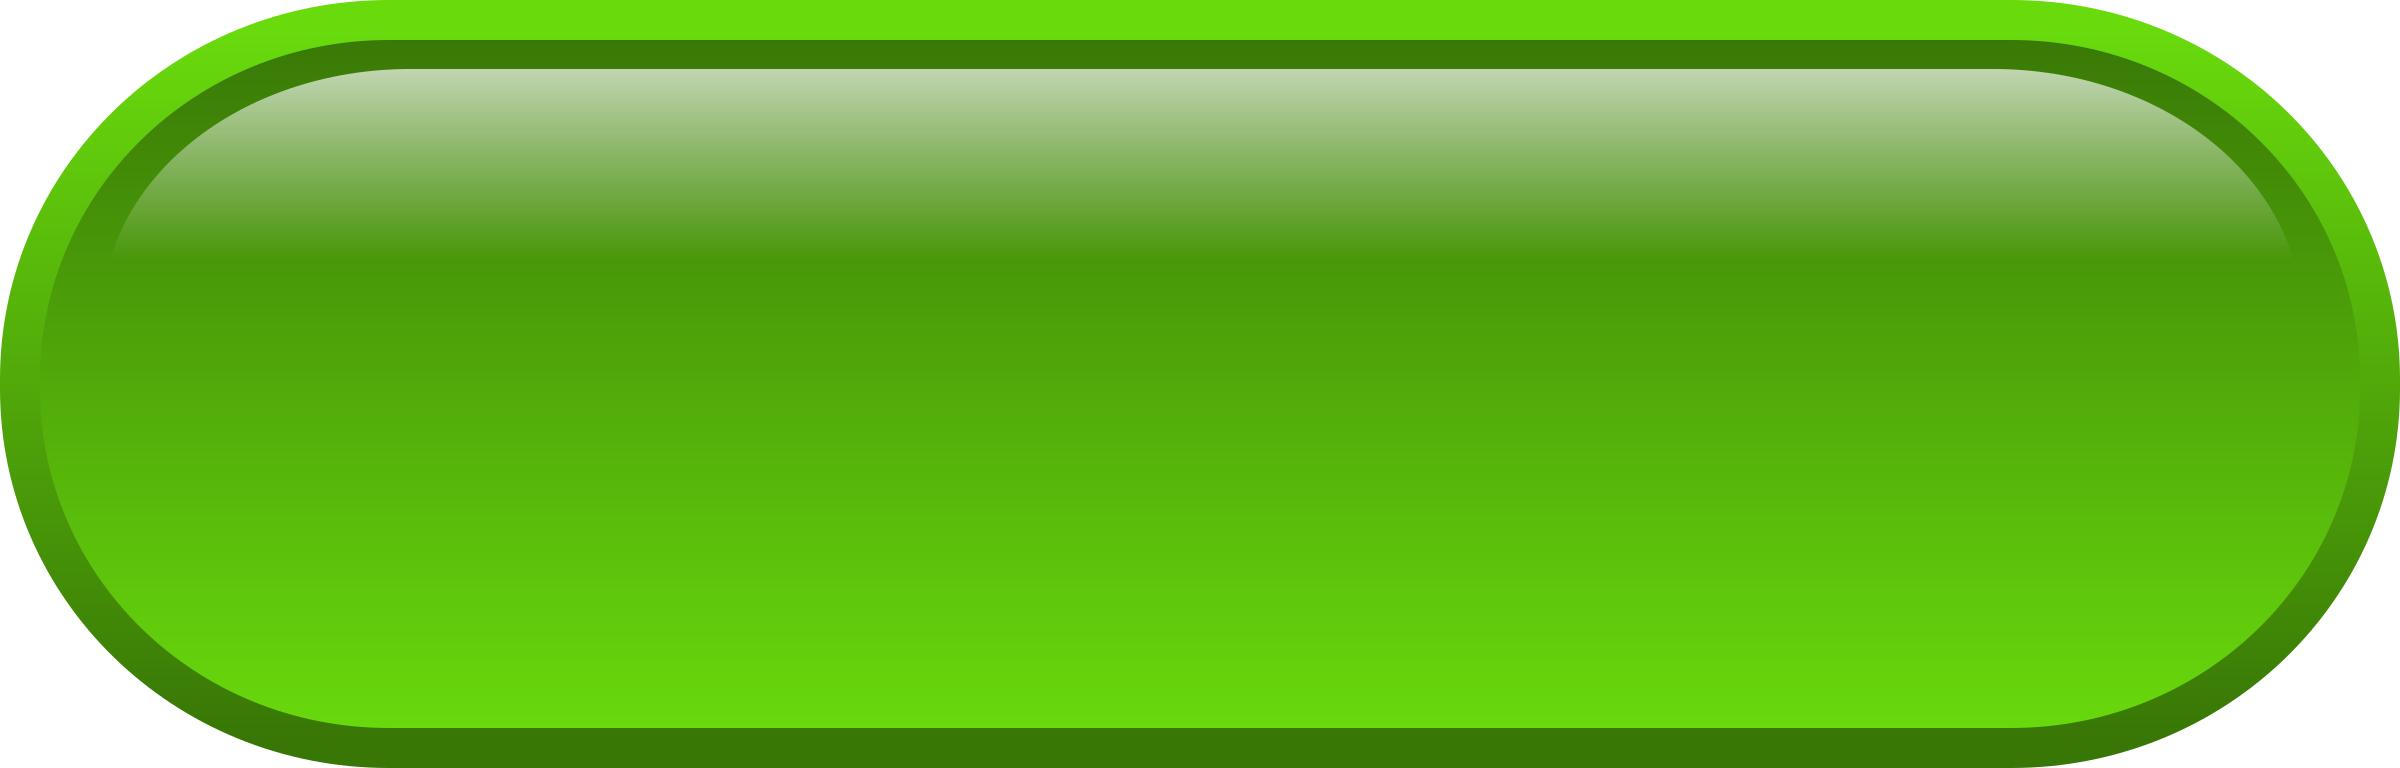 Big image png - Green button ...